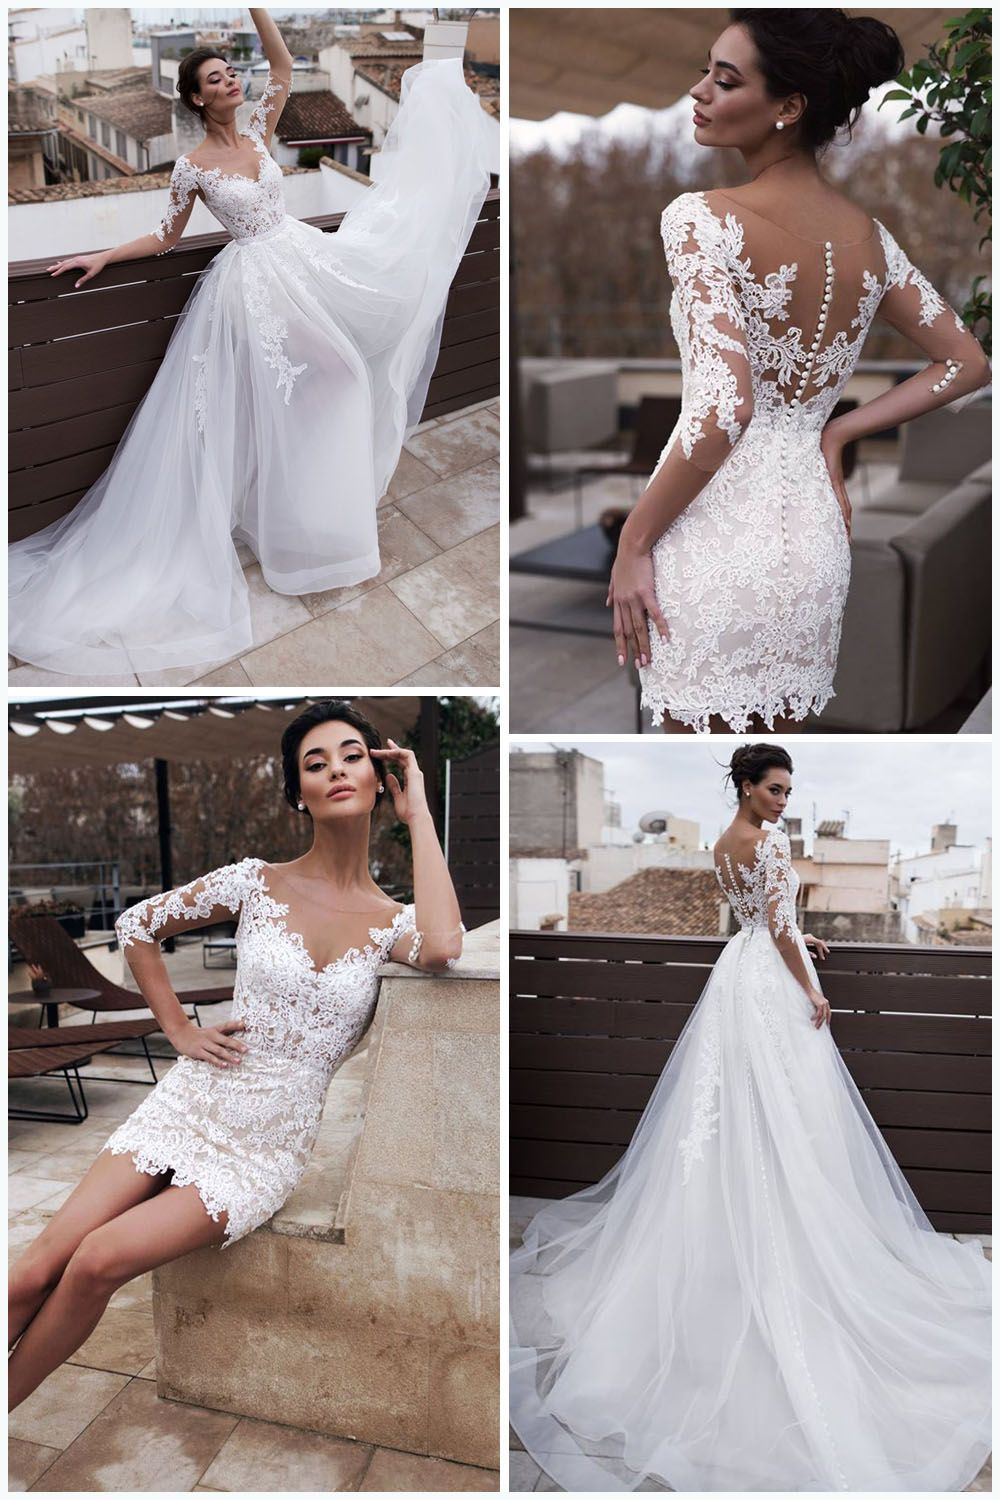 Get Some Inspiration From Our Hot Selling Wedding Dresses Find Your Dream Dress Ea Wedding Dress Detachable Skirt Detachable Wedding Dress Short Wedding Dress